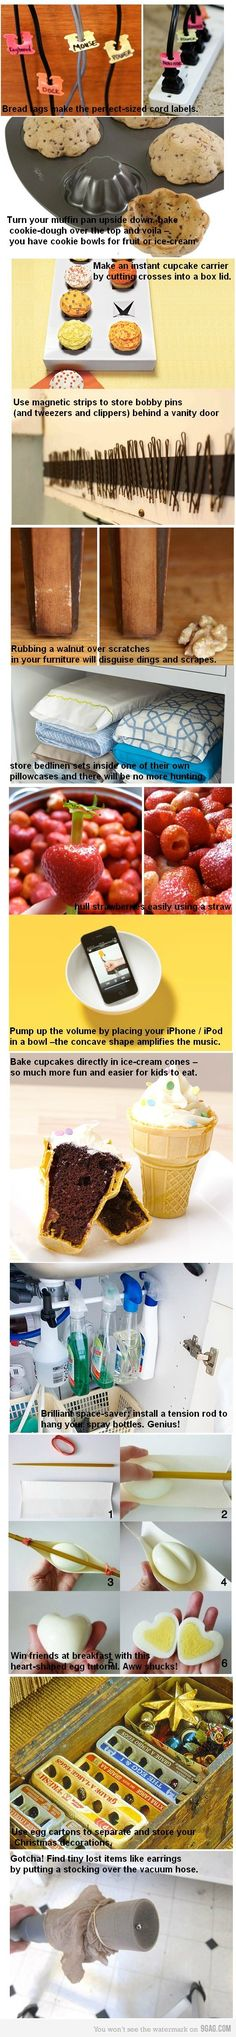 great household tips.... and my boyfriend sent me this!  (somebody secretly wants to be on Pinterest!)